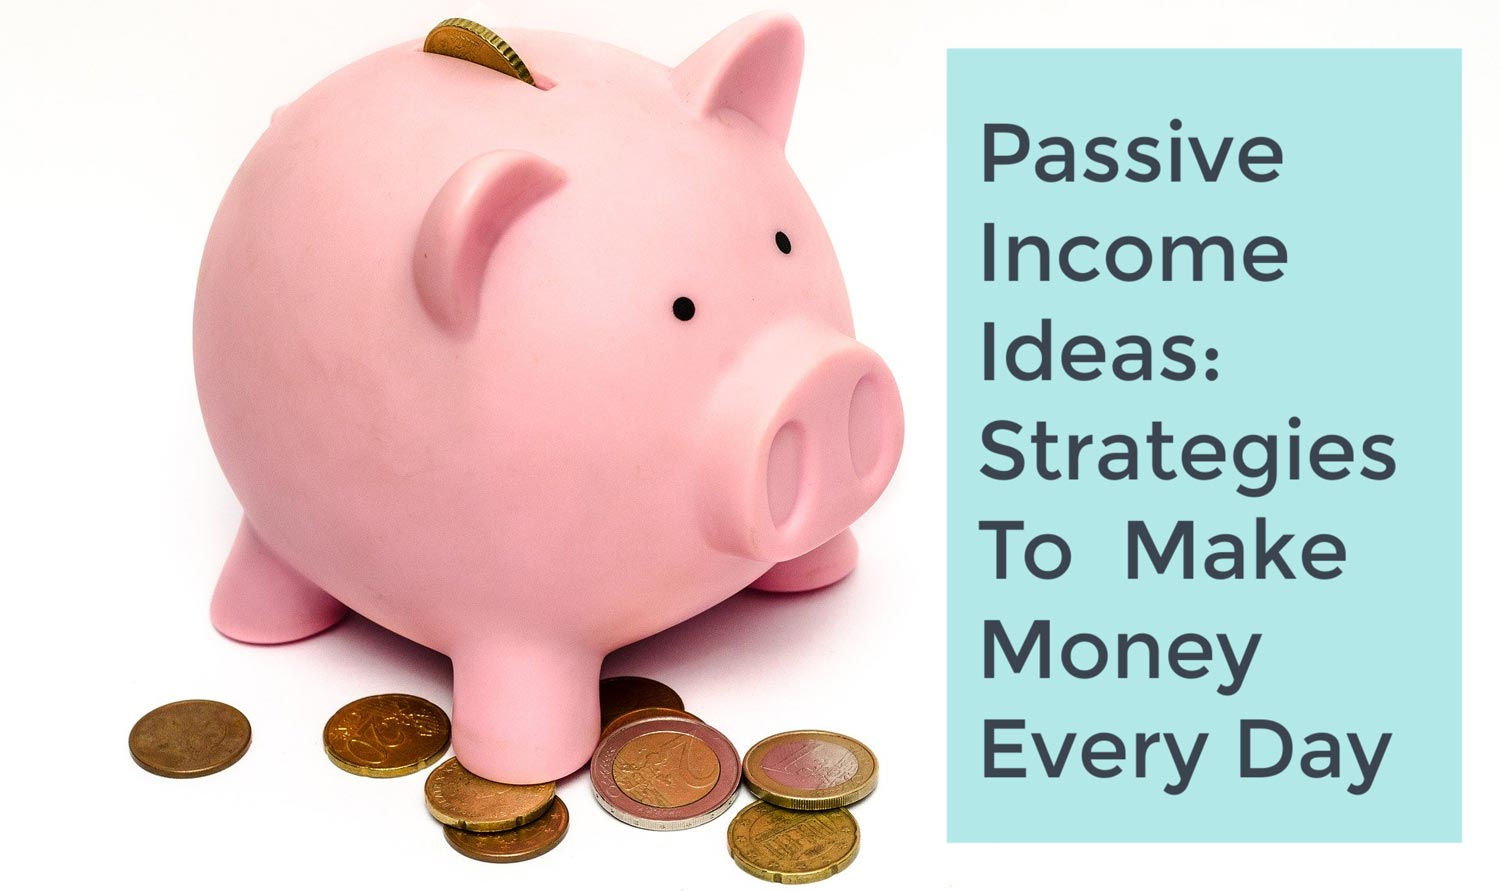 Passive Income Ideas: Strategies For Making Money Every Day